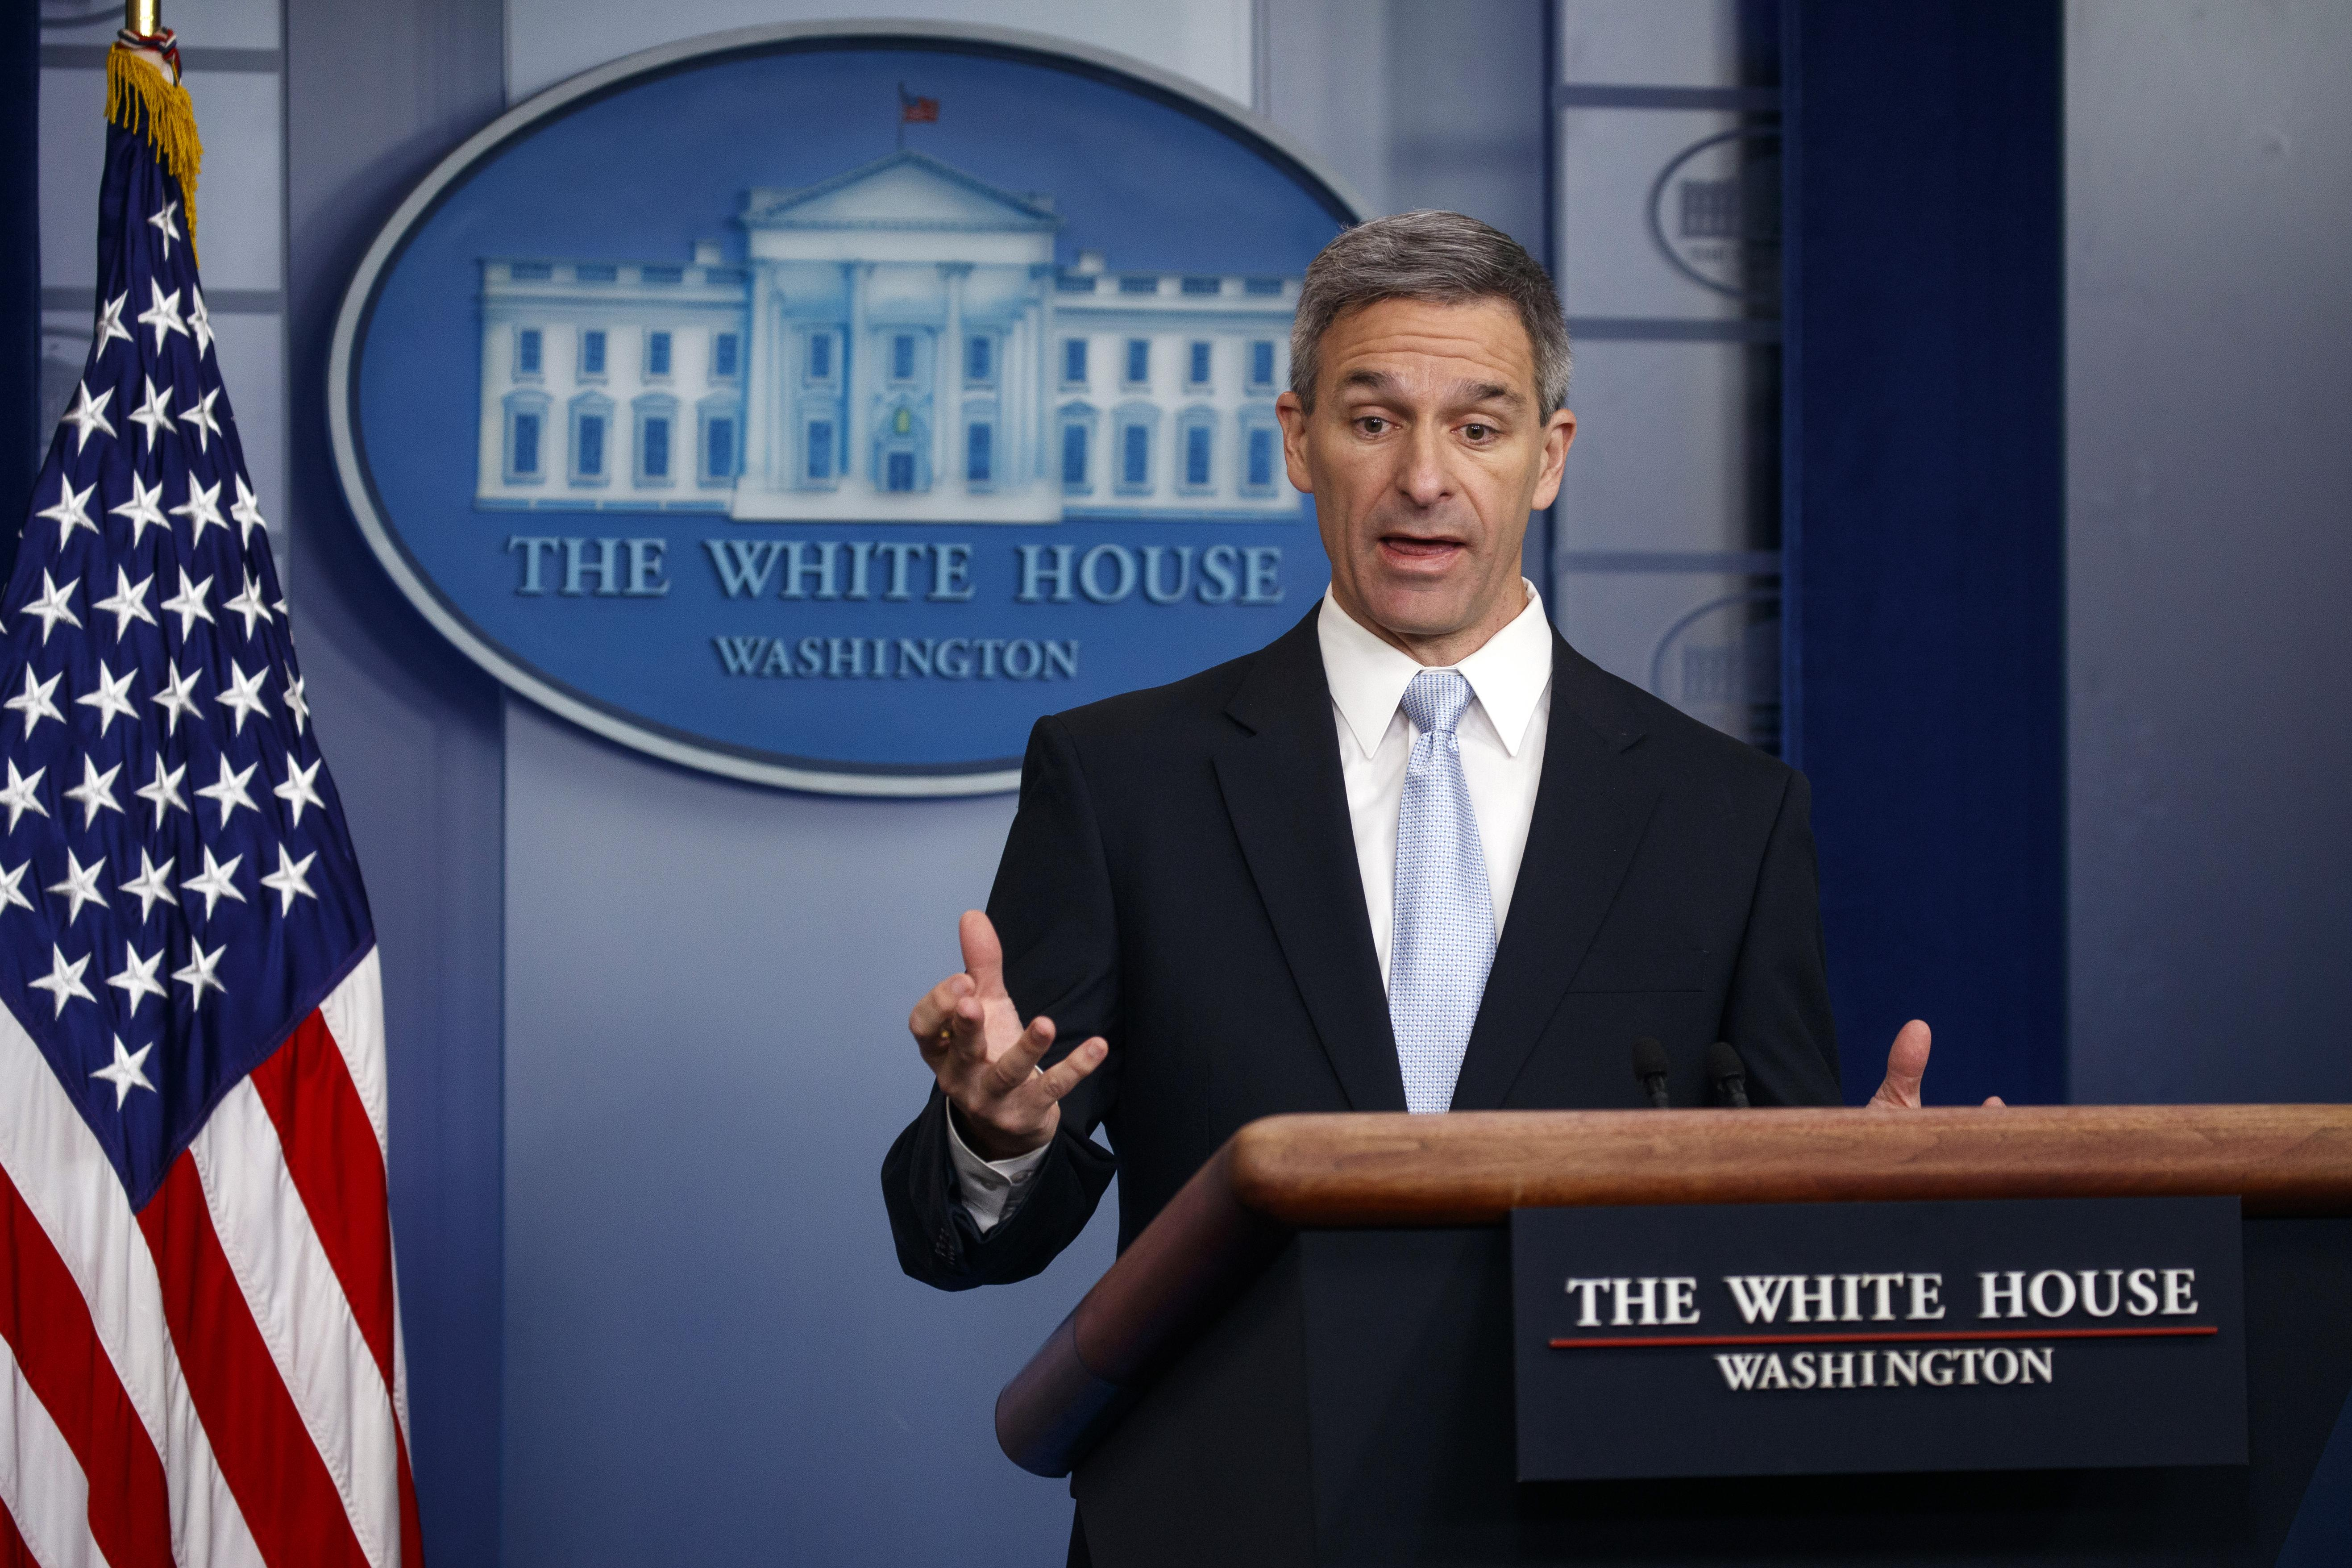 Ken Cuccinelli: Birthright citizenship can be changed without amending Constitution